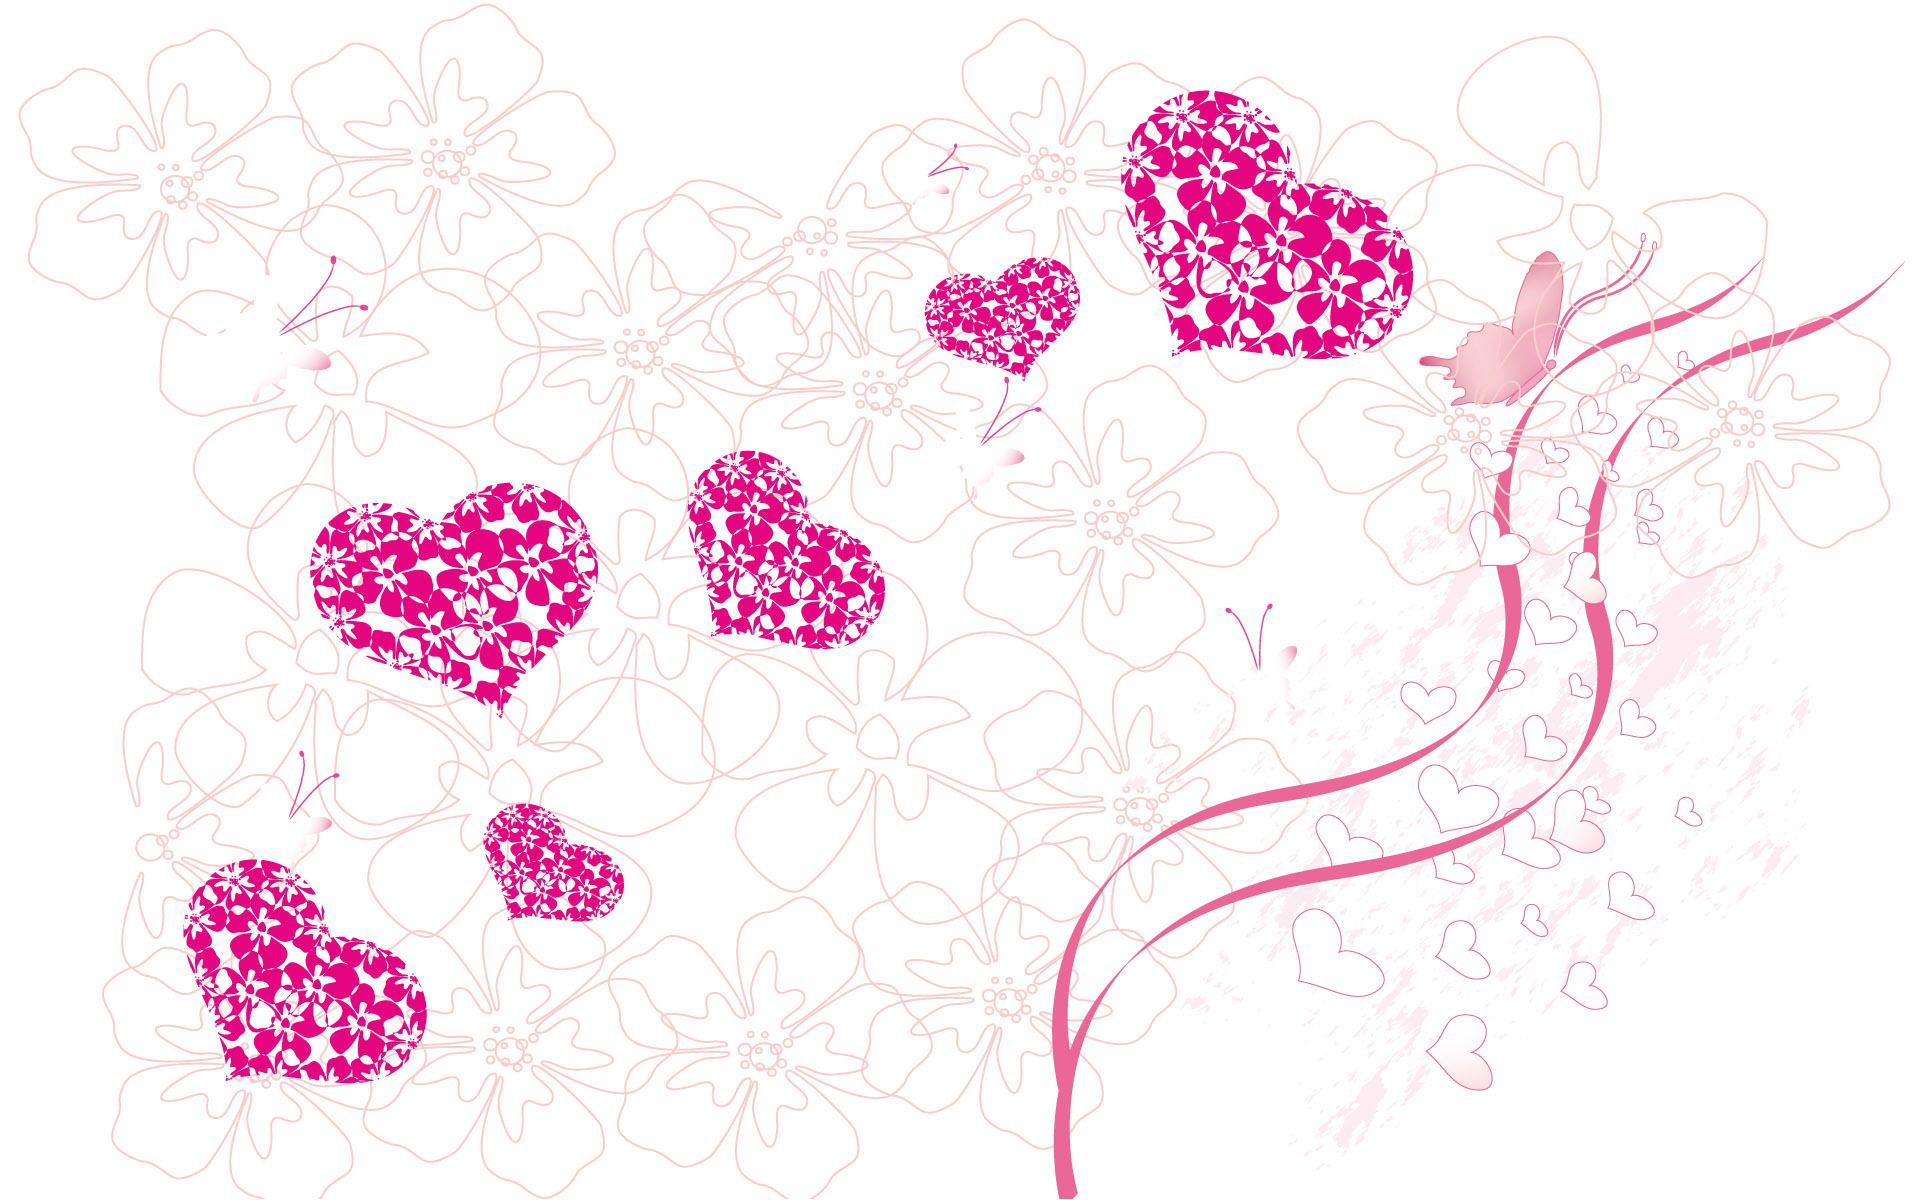 heart, love, butterfly, pink, girly,pretty | ♥♥~hearts